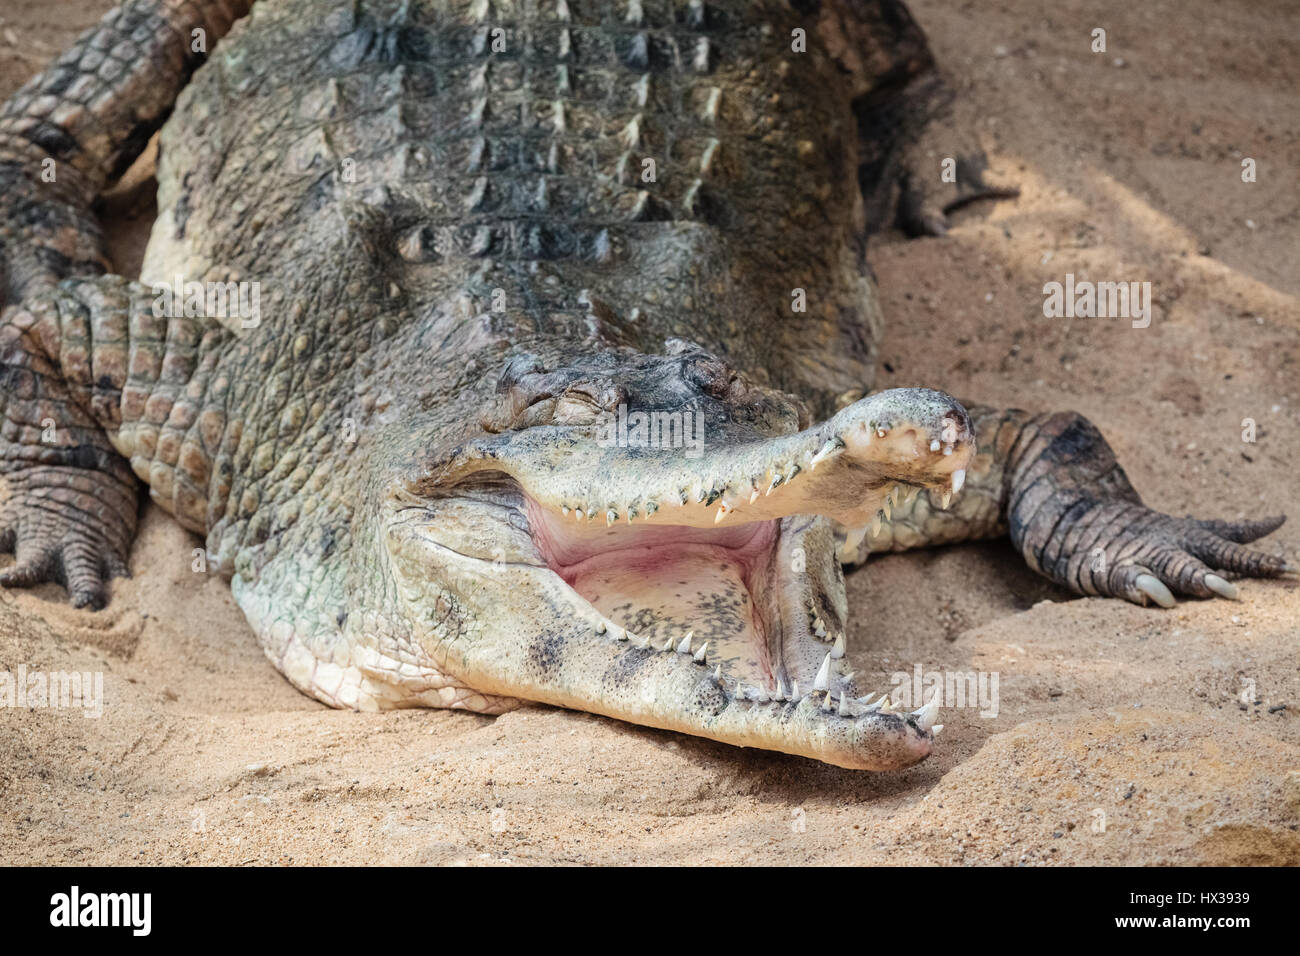 Nile Crocodile - second largest extant reptile in the world - Stock Image